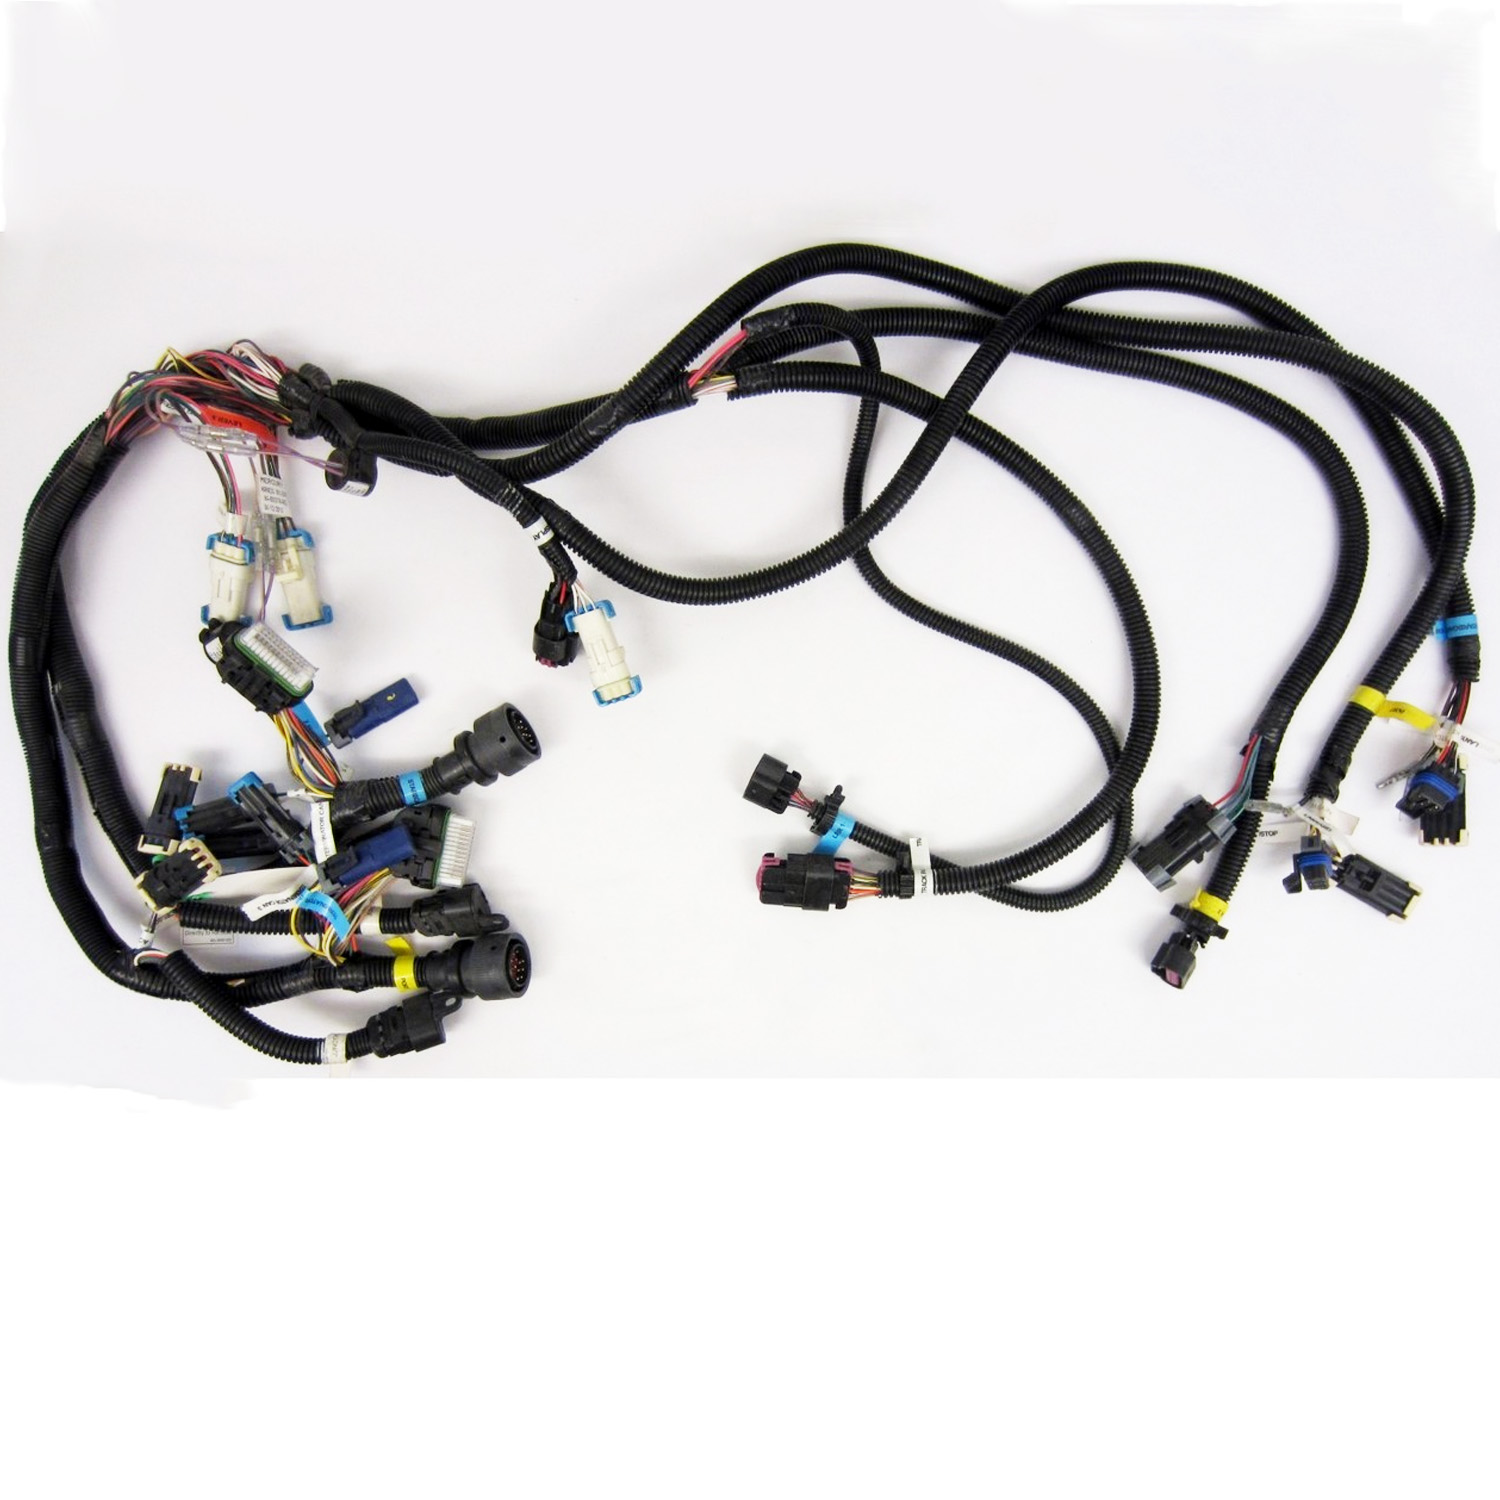 mercury new oem smartcraft dts verado dual engine wire harness 84 rh ebay  com mercury smartcraft wiring harness mercury engine wiring harness